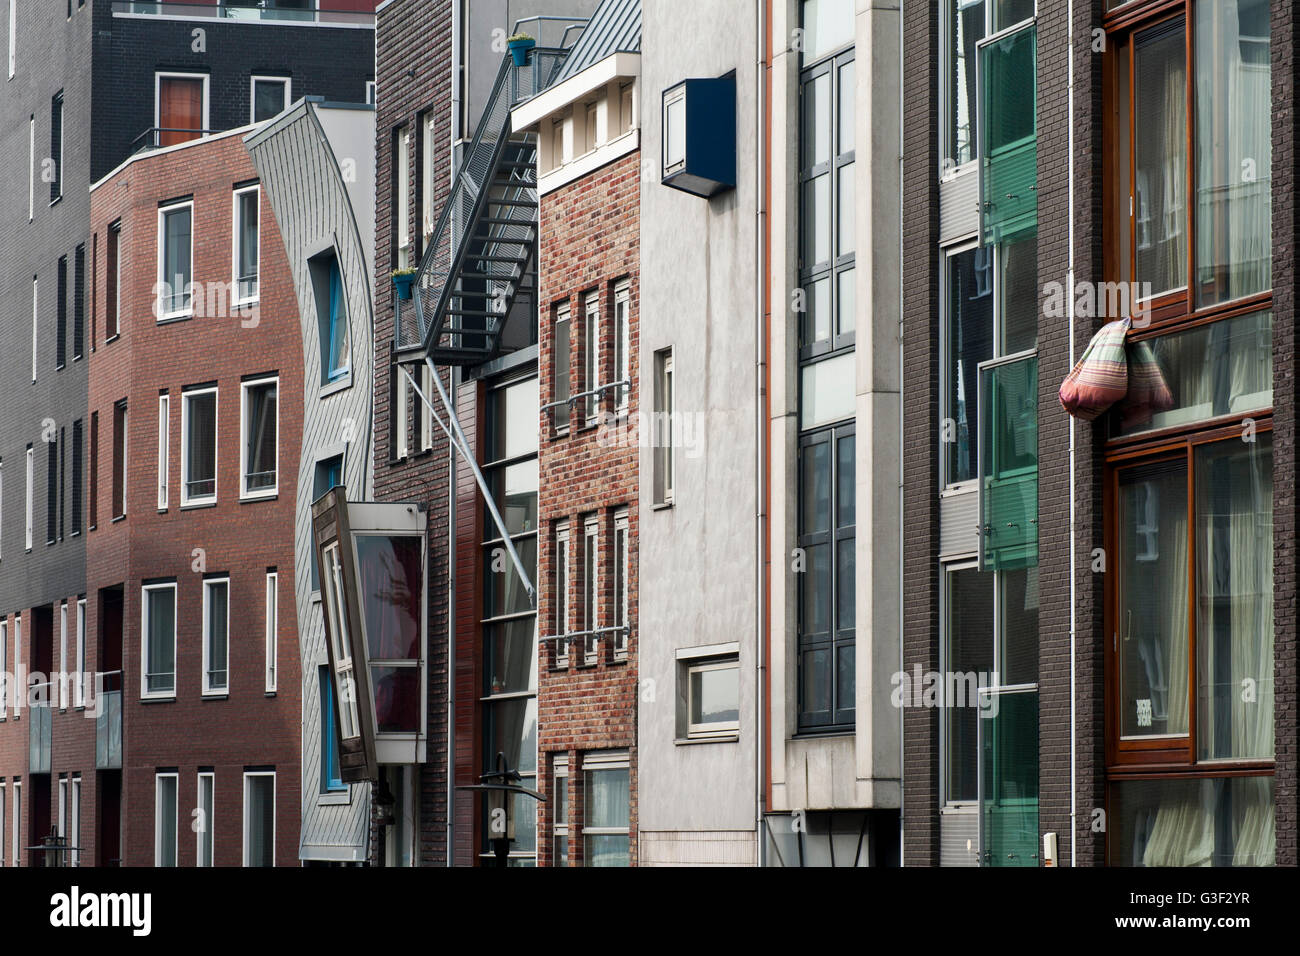 Residential houses on the Java-eiland, Amsterdam, Holland, Netherlands - Stock Image